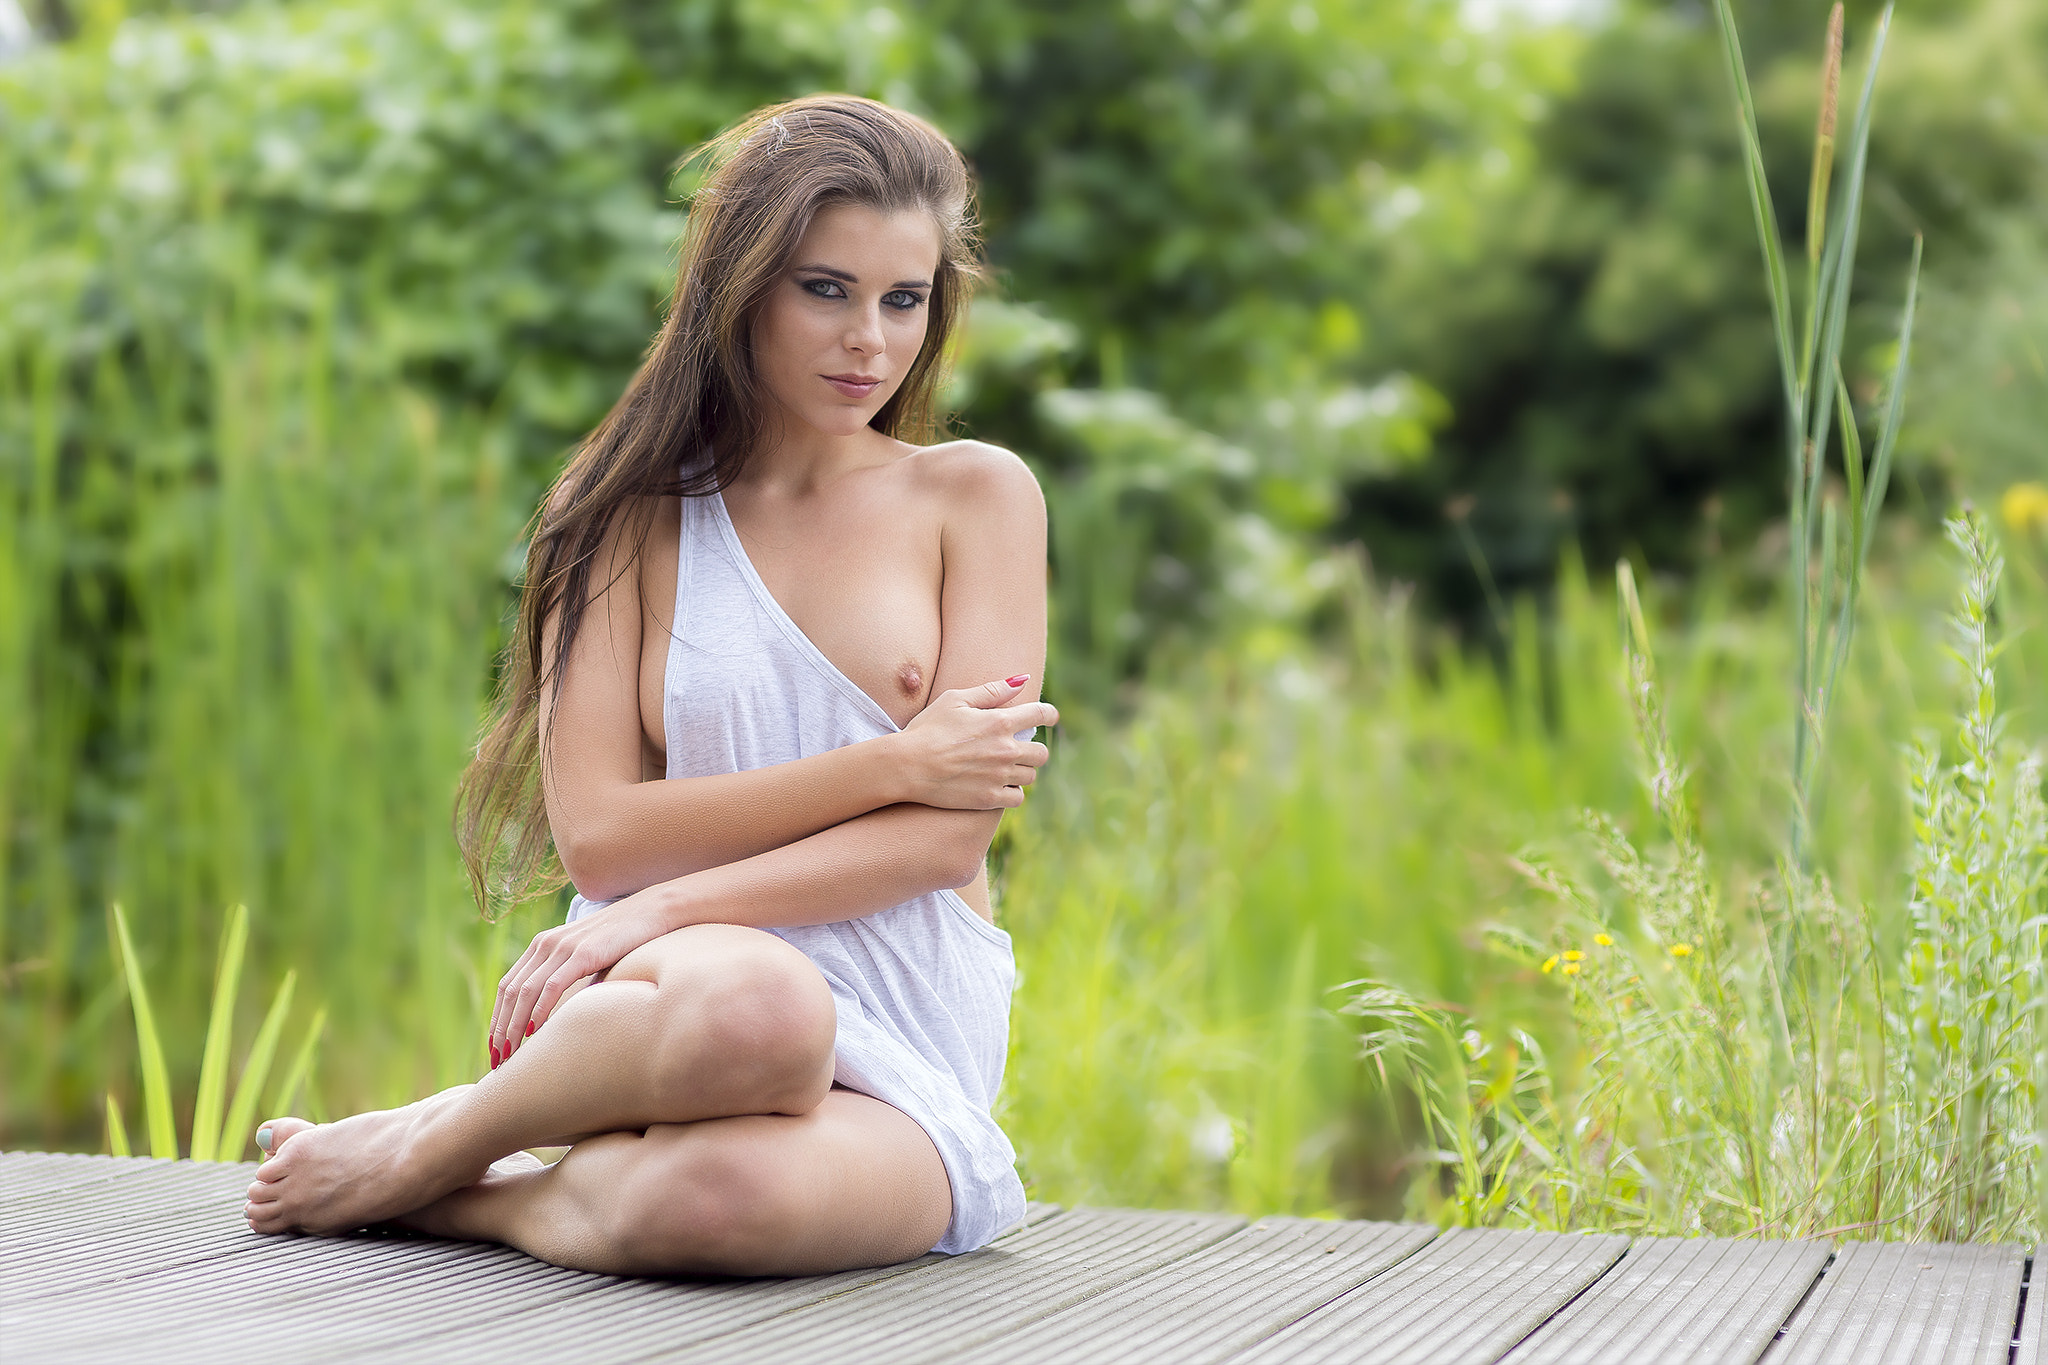 Photograph Chilling by Guenter Stoehr on 500px